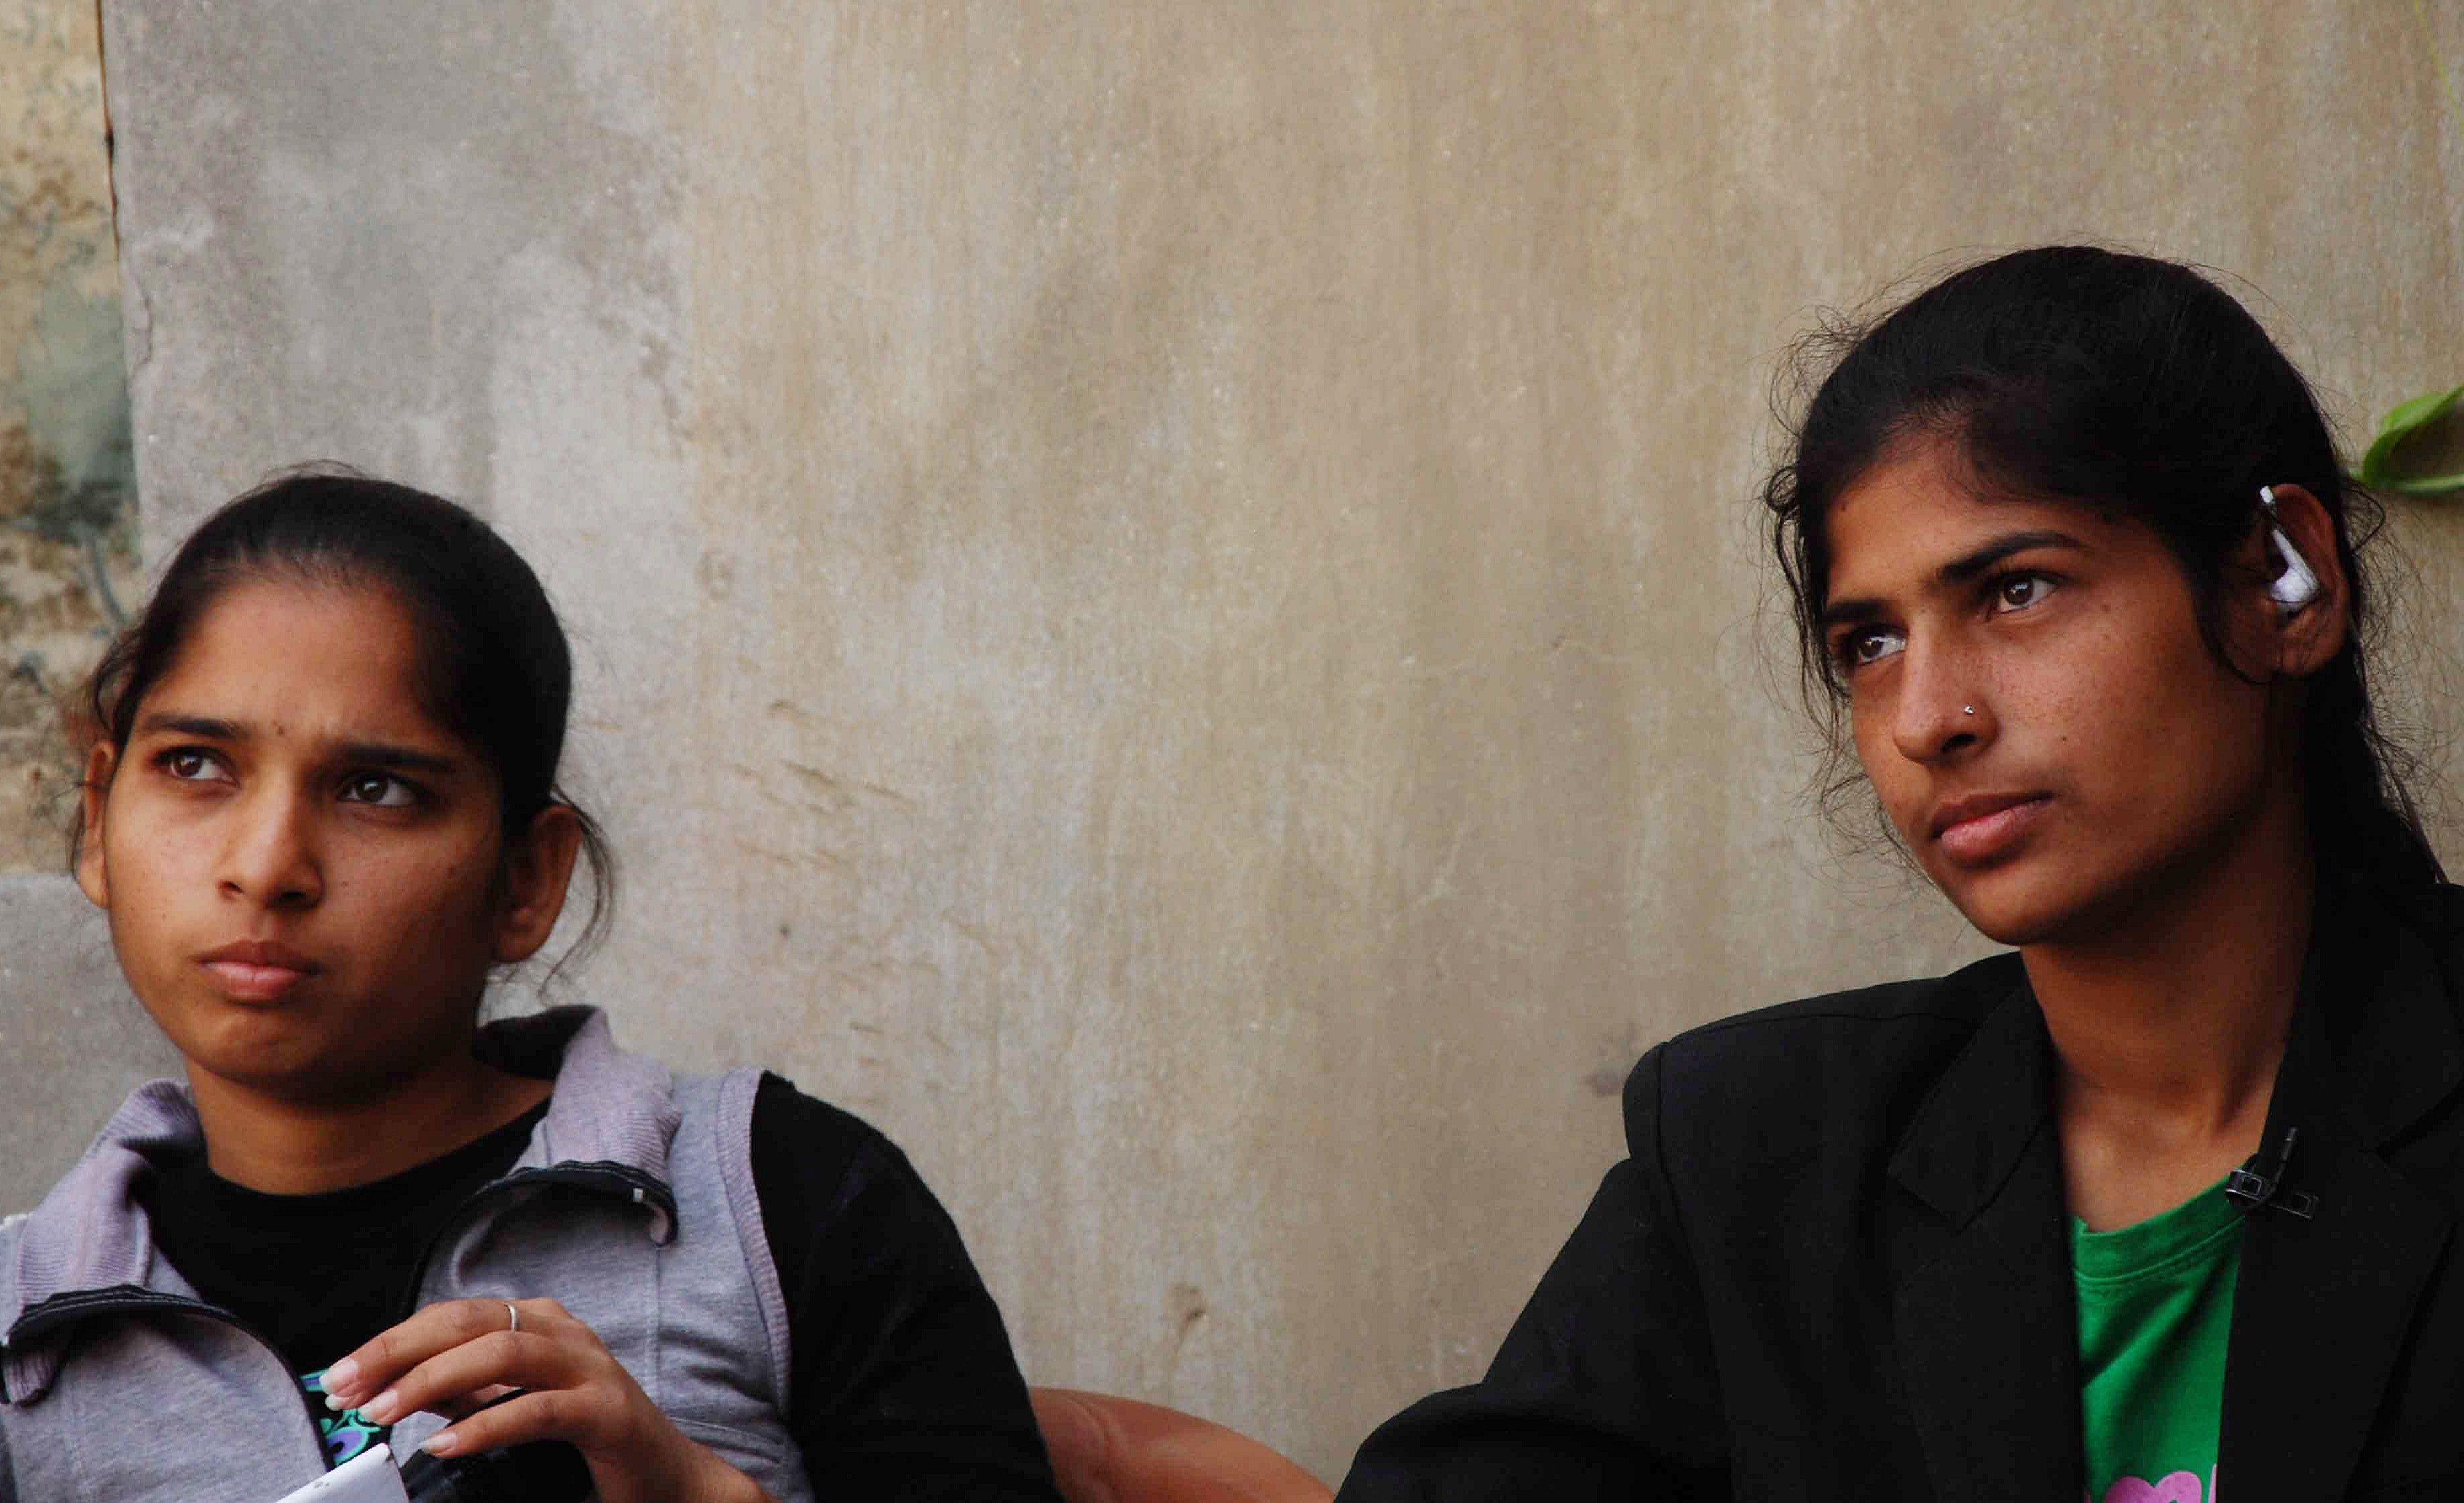 Indian sisters Pooja (L), 19, and Aarti, 22, are photographed at their home in the district of Sonepat on December 1, 2014. Two Indian sisters were showered with praise and cash on December 1 after a video of them thrashing three alleged molesters on a moving bus was widely replayed. Arti and Pooja Kumar, aged 22 and 19, were allegedly harassed by the men on a crowded bus last week while returning home in Rohtak, a district of largely rural Haryana state that borders New Delhi.